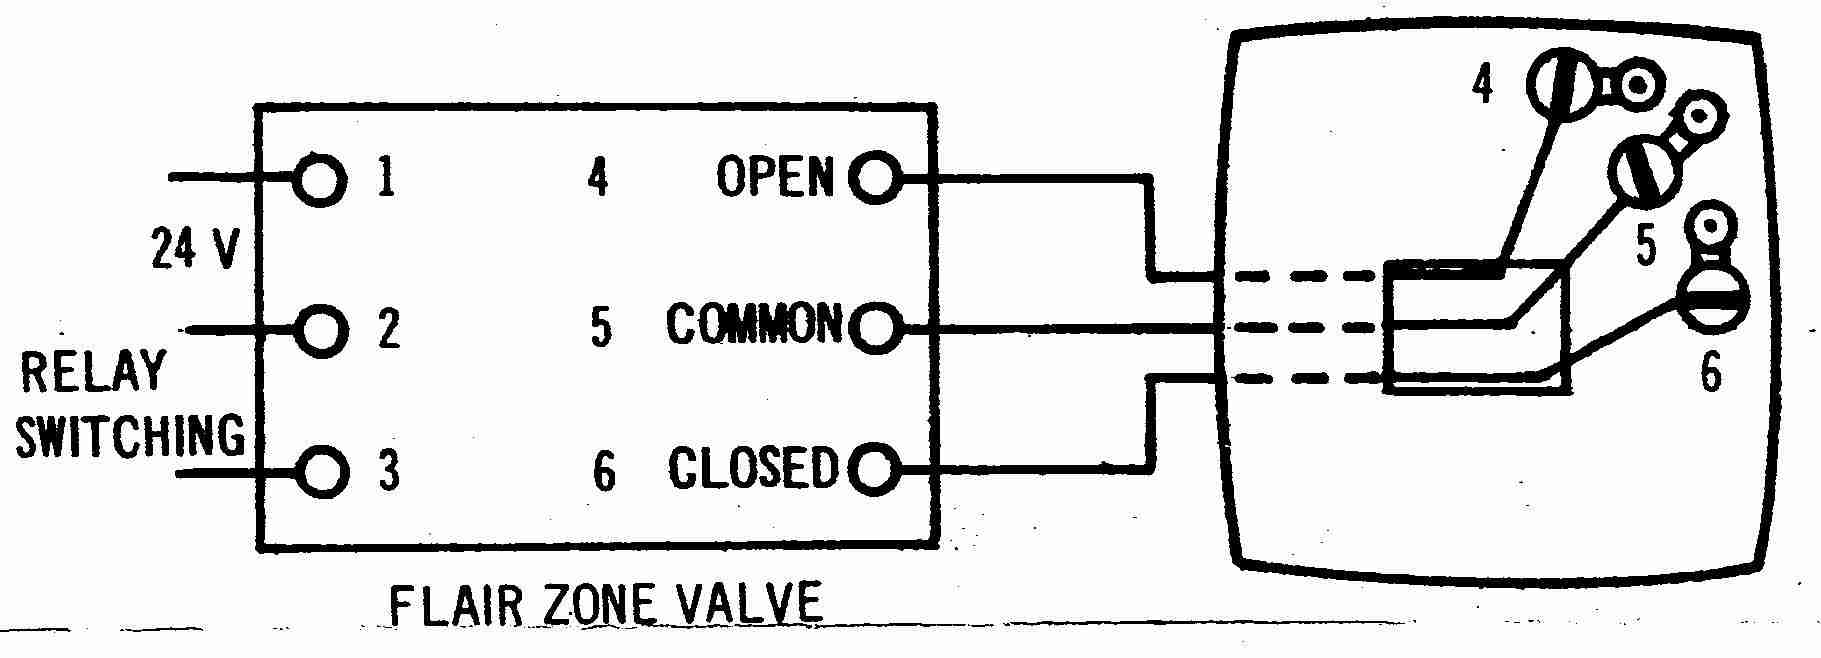 caleffi zone valve wiring diagram all wiring diagram zone valve wiring installation instructions guide to heating honeywell t87f thermostat wiring diagram caleffi zone valve wiring diagram